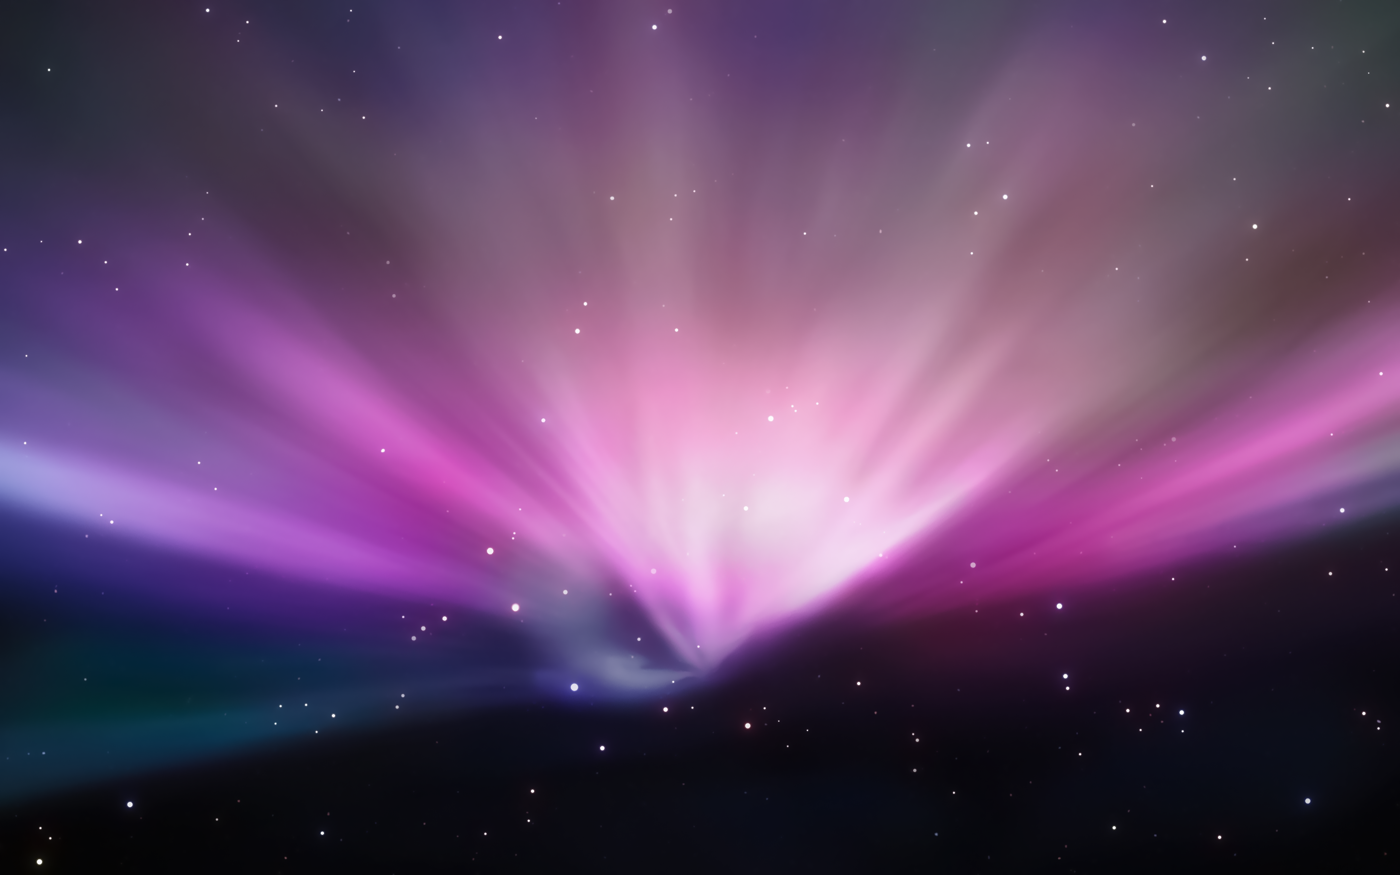 Every Default Macos Wallpaper In Glorious 5k Resolution 512 Pixels Images, Photos, Reviews